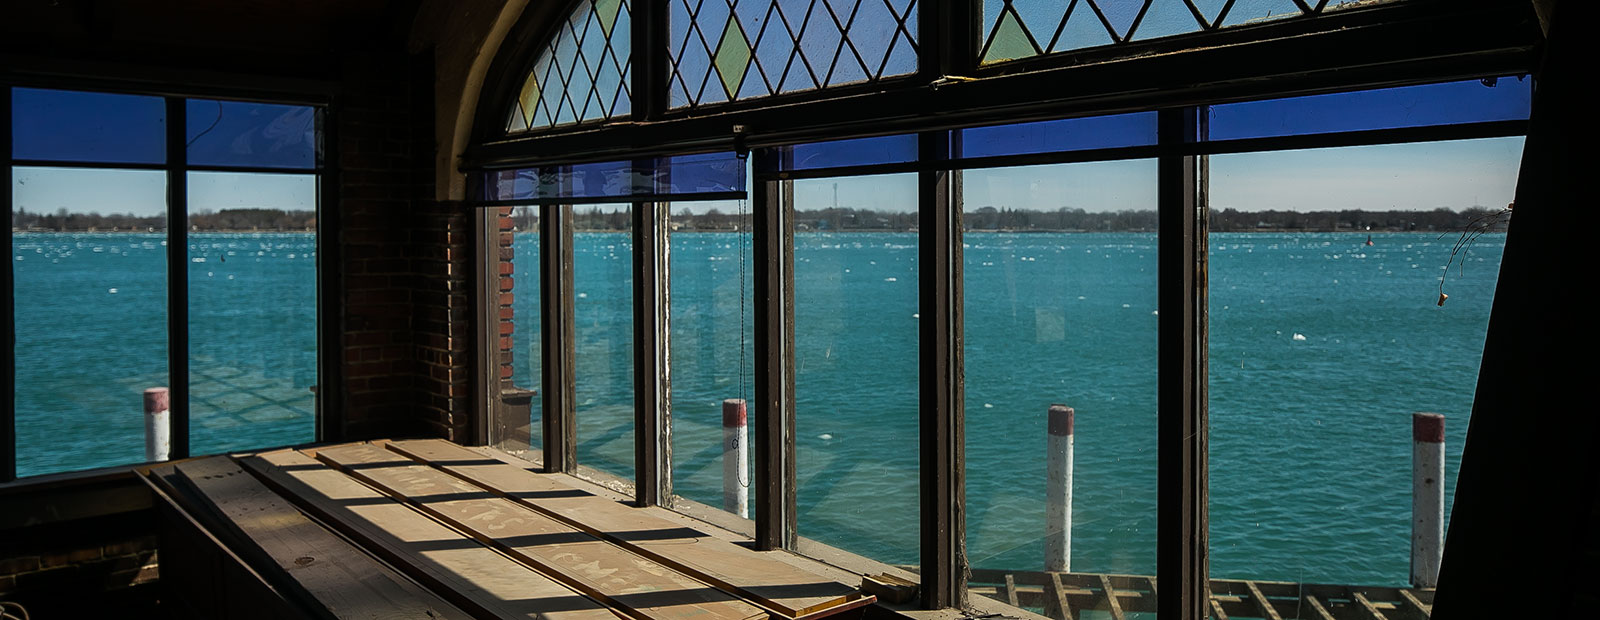 Visitors to the St. Clair Inn will enjoy breathtaking views of the water. <span class='image-credits'>David Lewinski</span>